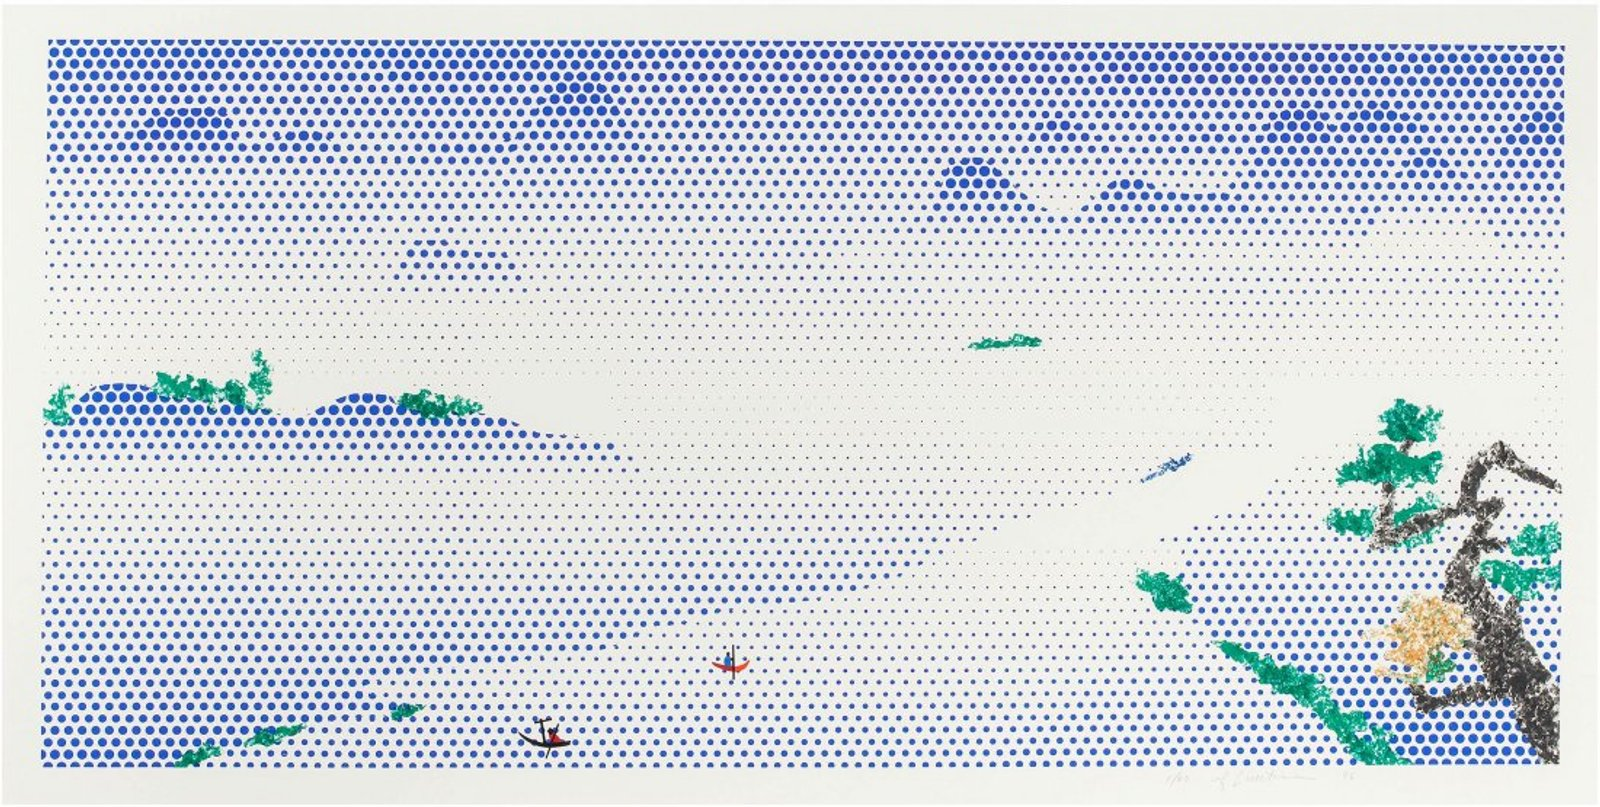 Roy Lichtenstein. Landscape With Boats, 1996.